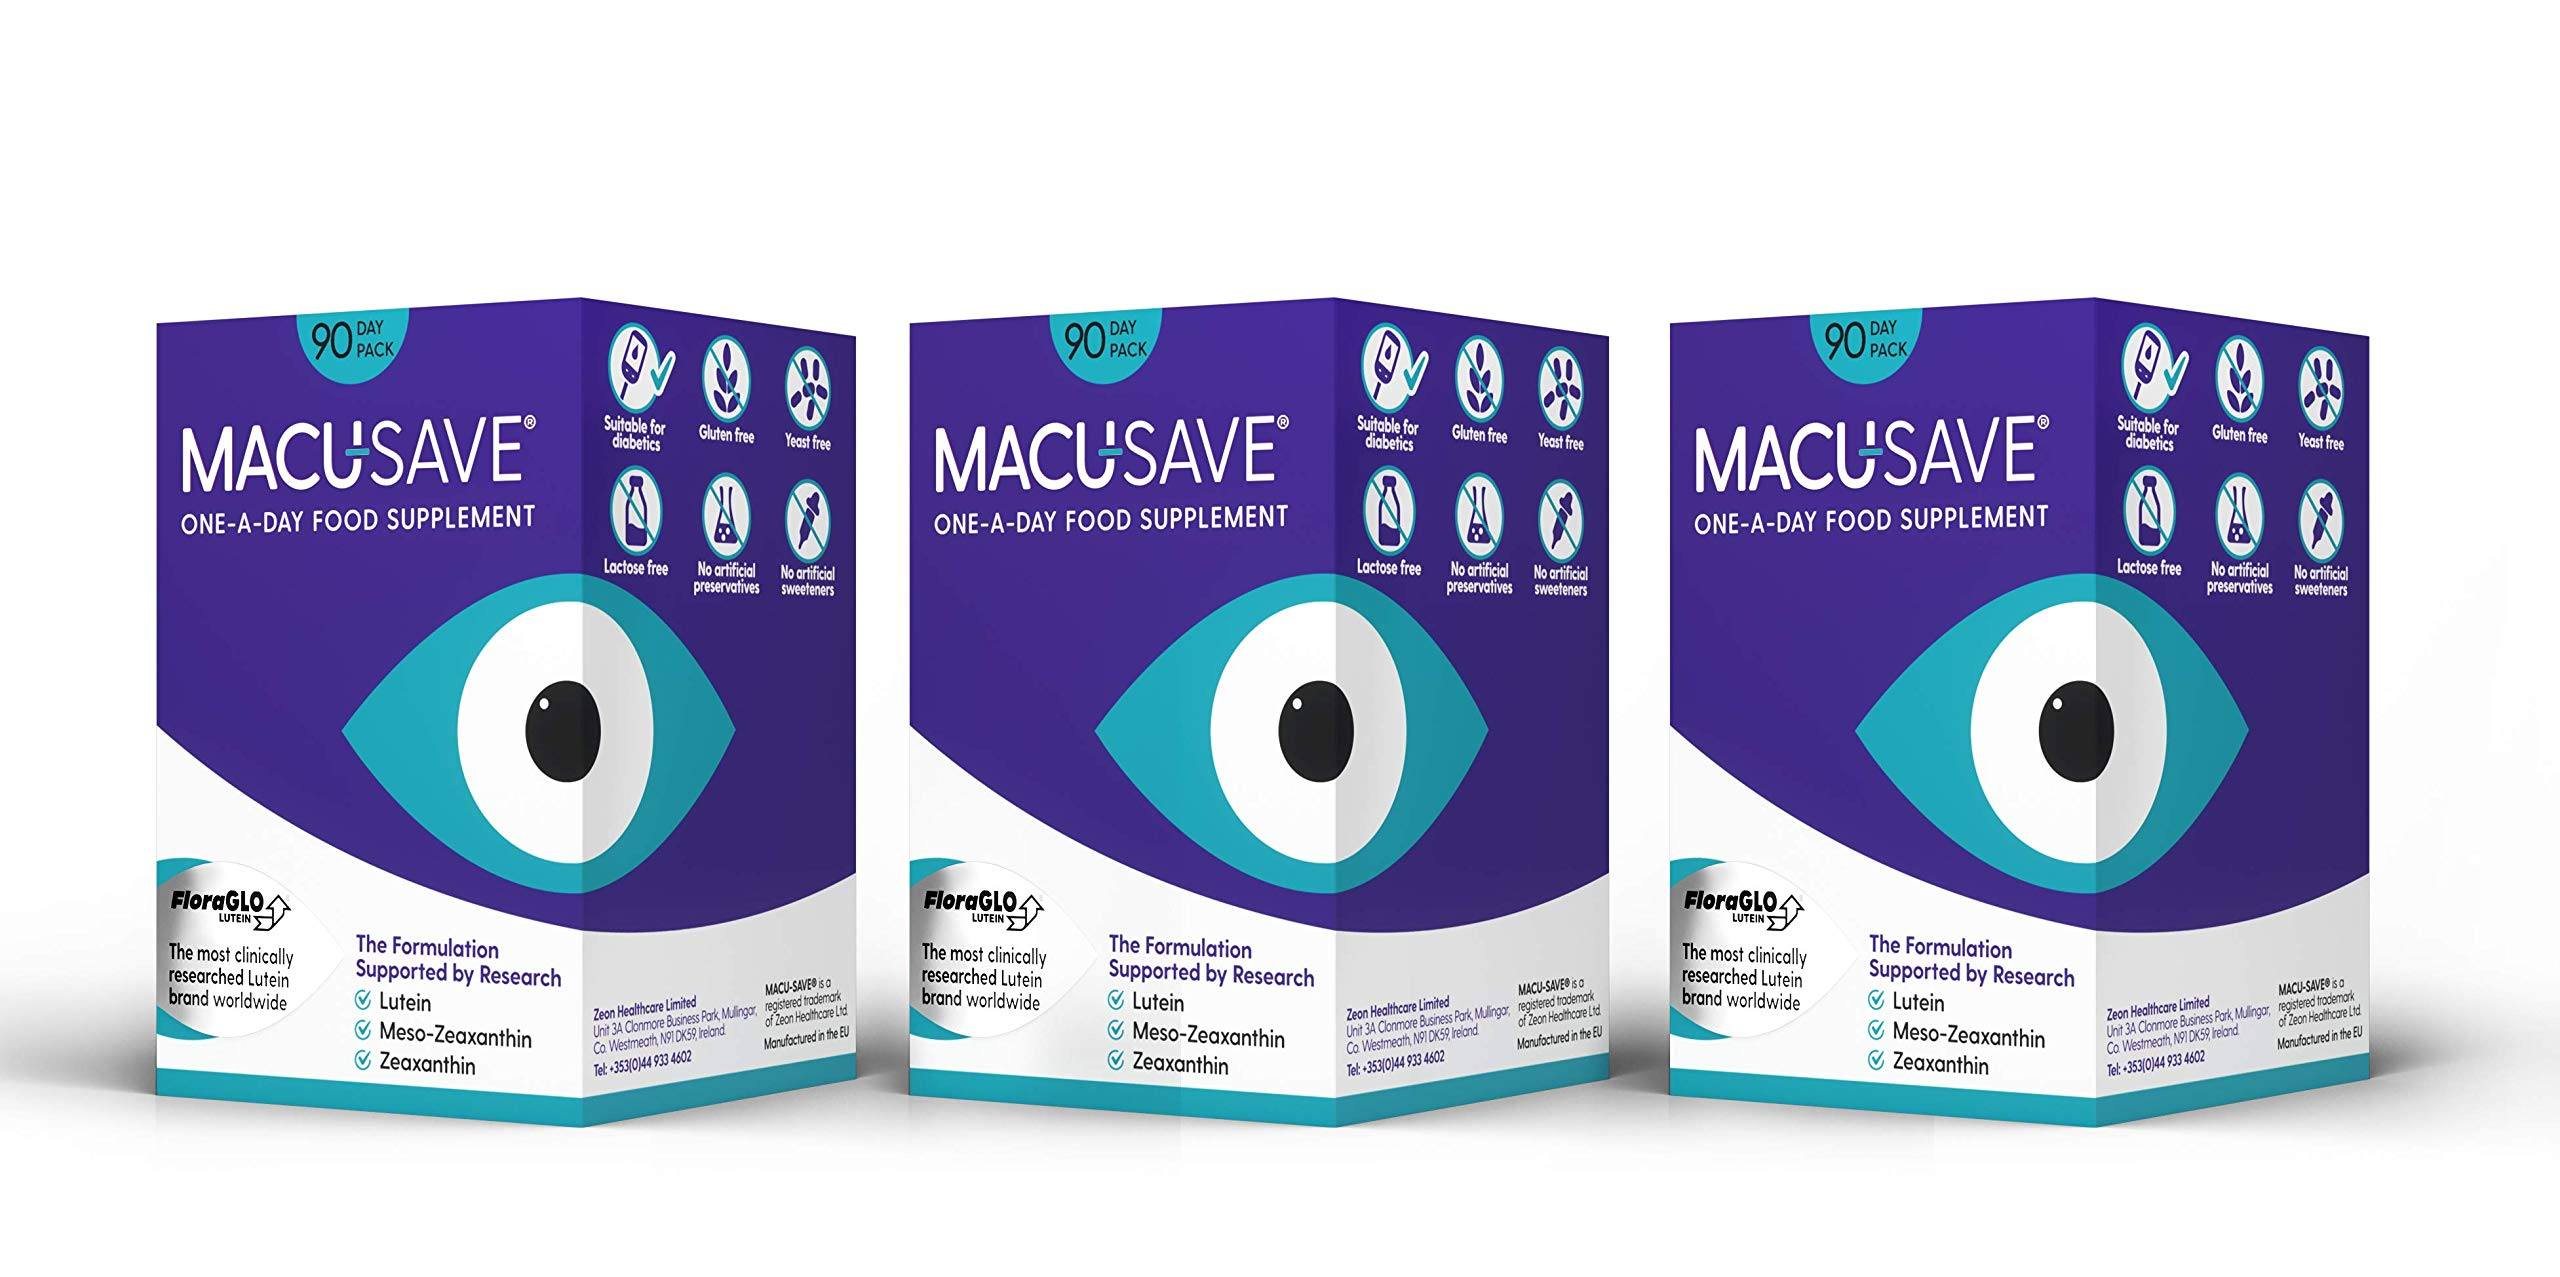 Macu-SAVE Food Supplement for Macular Health with Meso-Zeaxanthin/Lutein and Zeaxanthin - Pack of 90 X 3